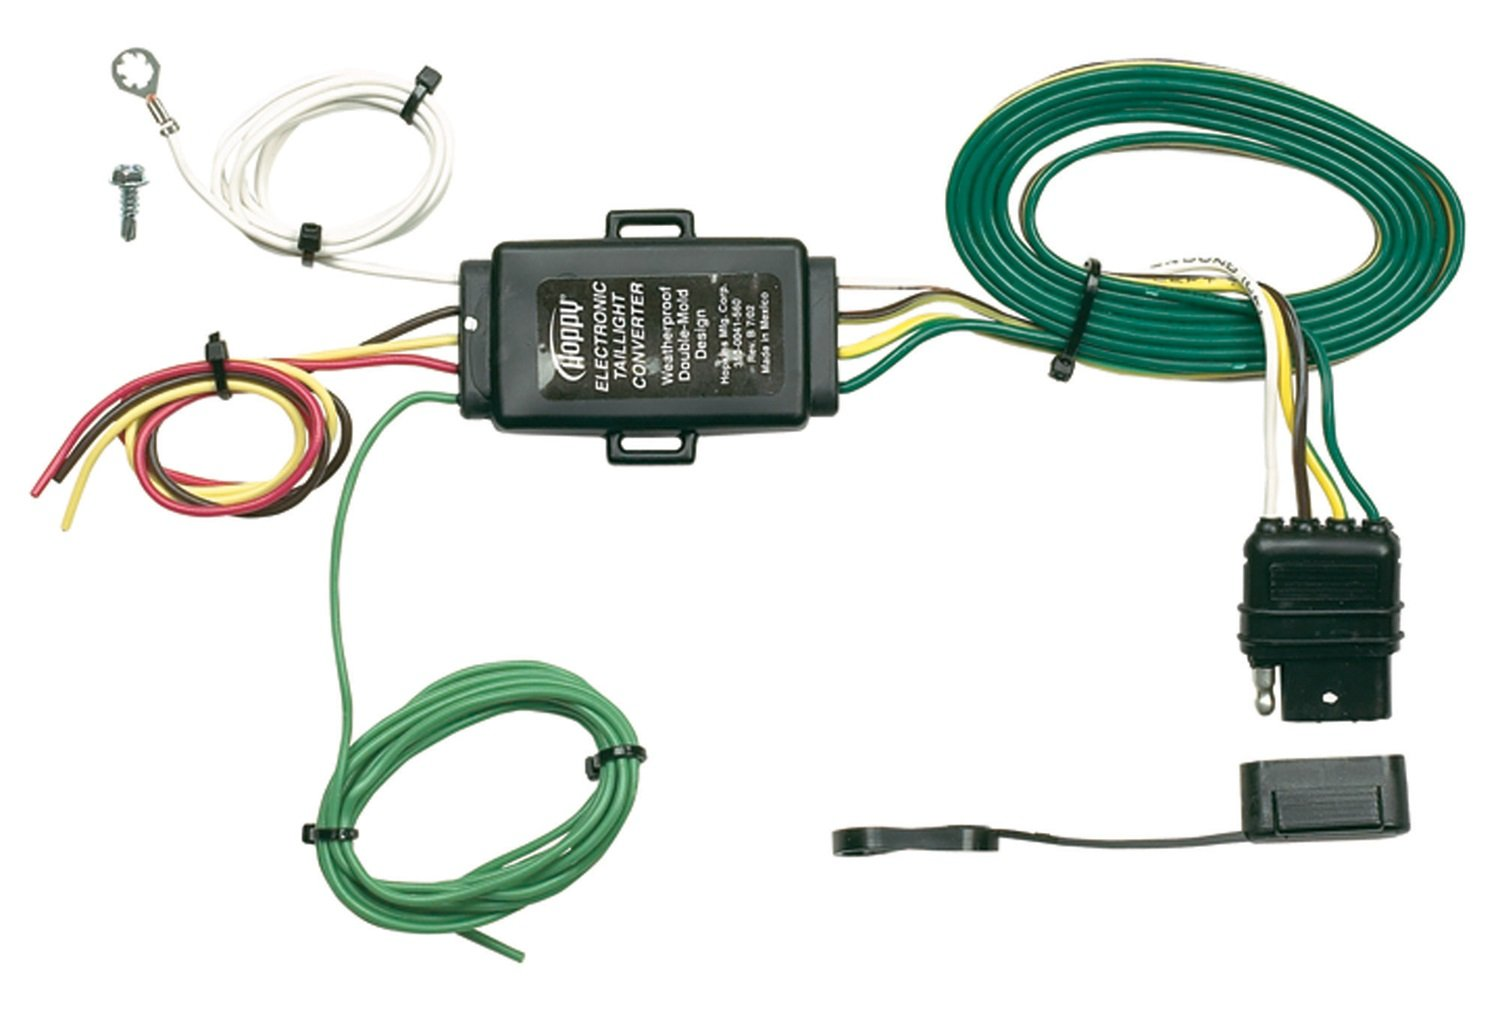 61WaHisQCLL._SL1500_ amazon com hopkins 48925 tail light converter with 4 wire flat tail light converter wiring diagram at fashall.co